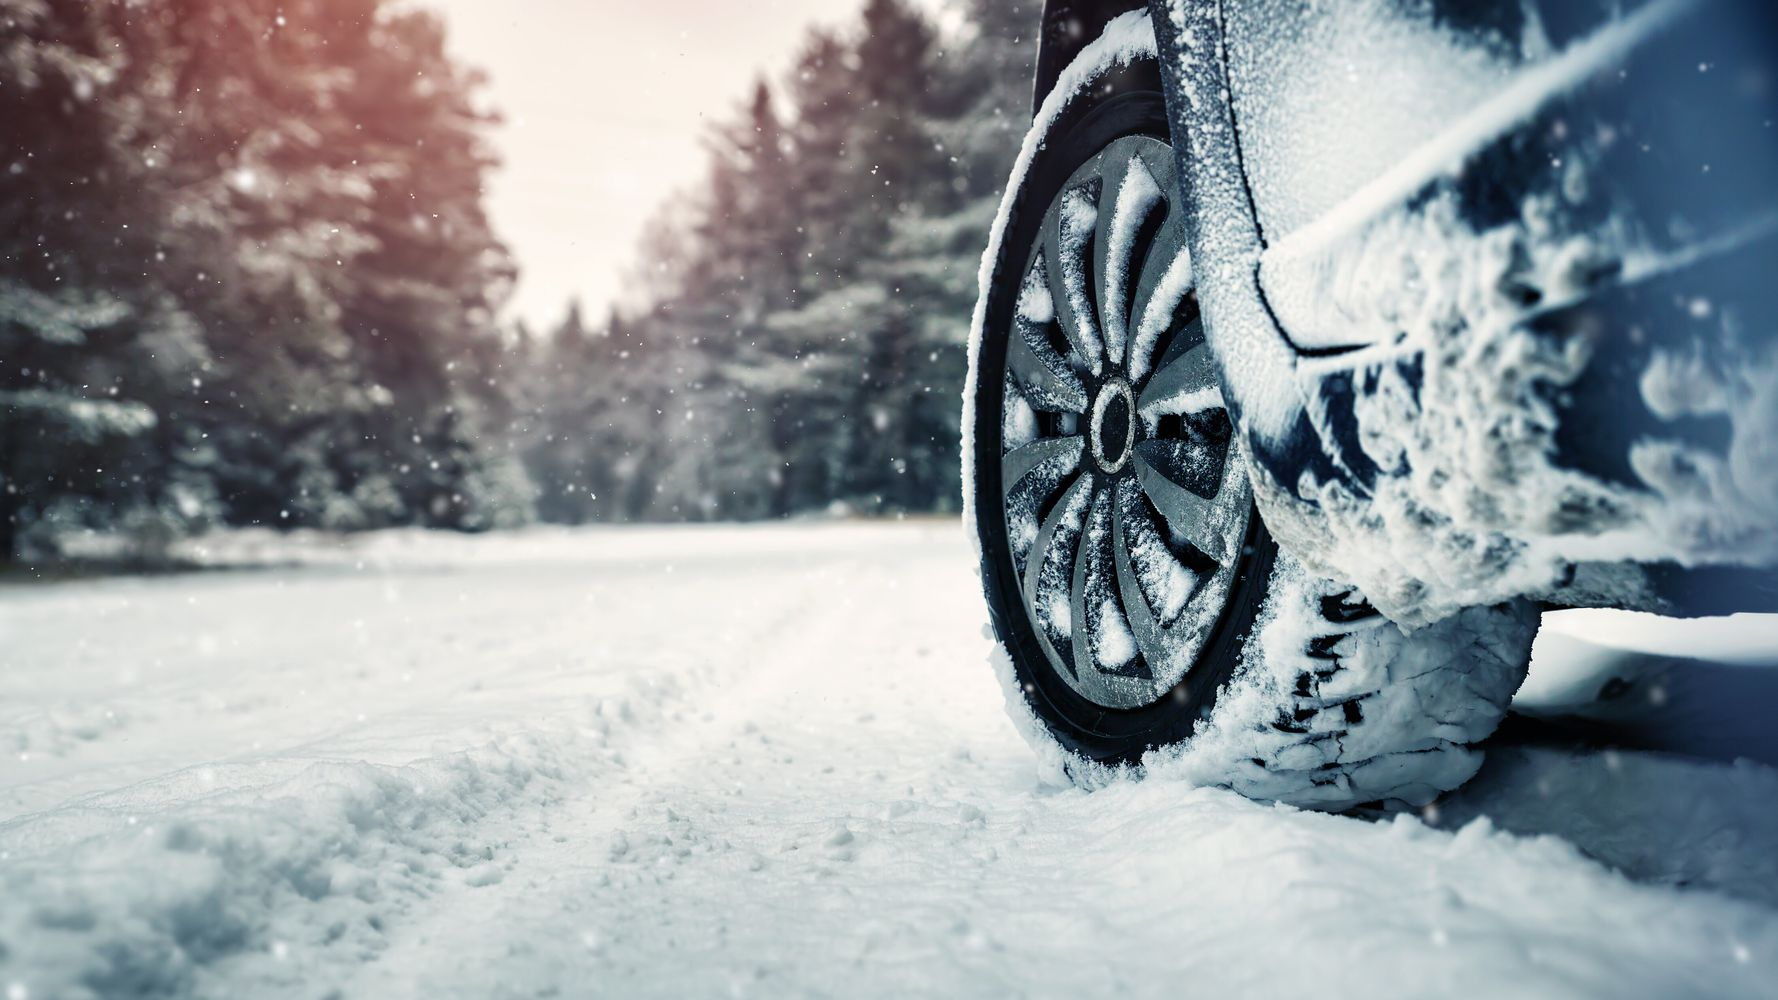 Winter Driving Safety Tips To Avoid Accidents During Bad Weather